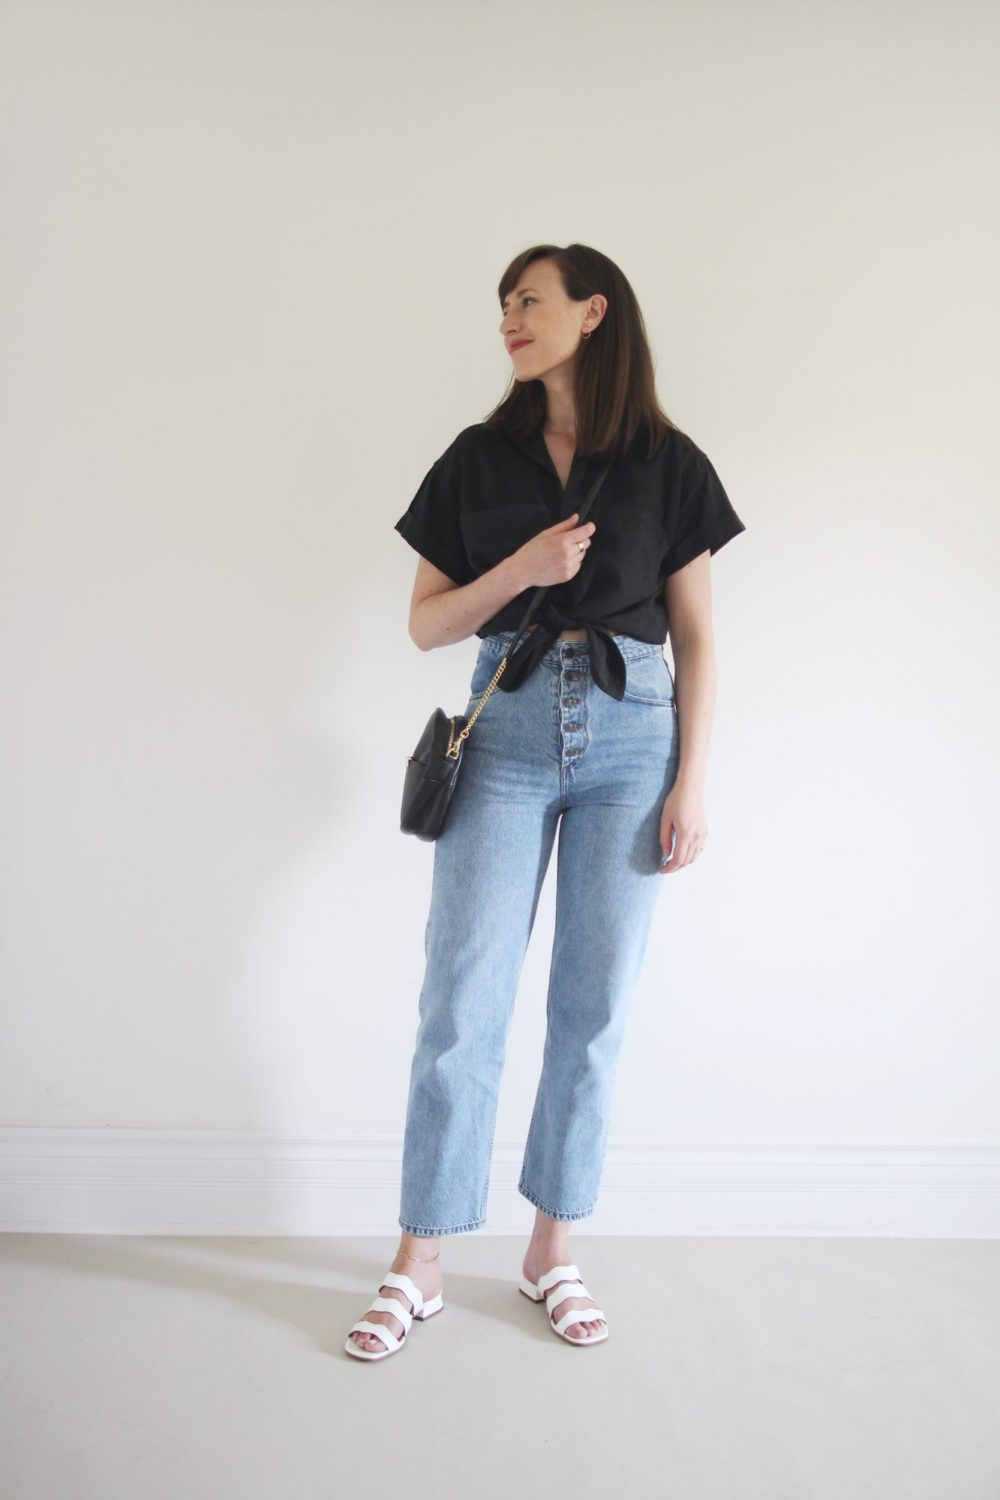 Style Bee - August Outfits - Look 12